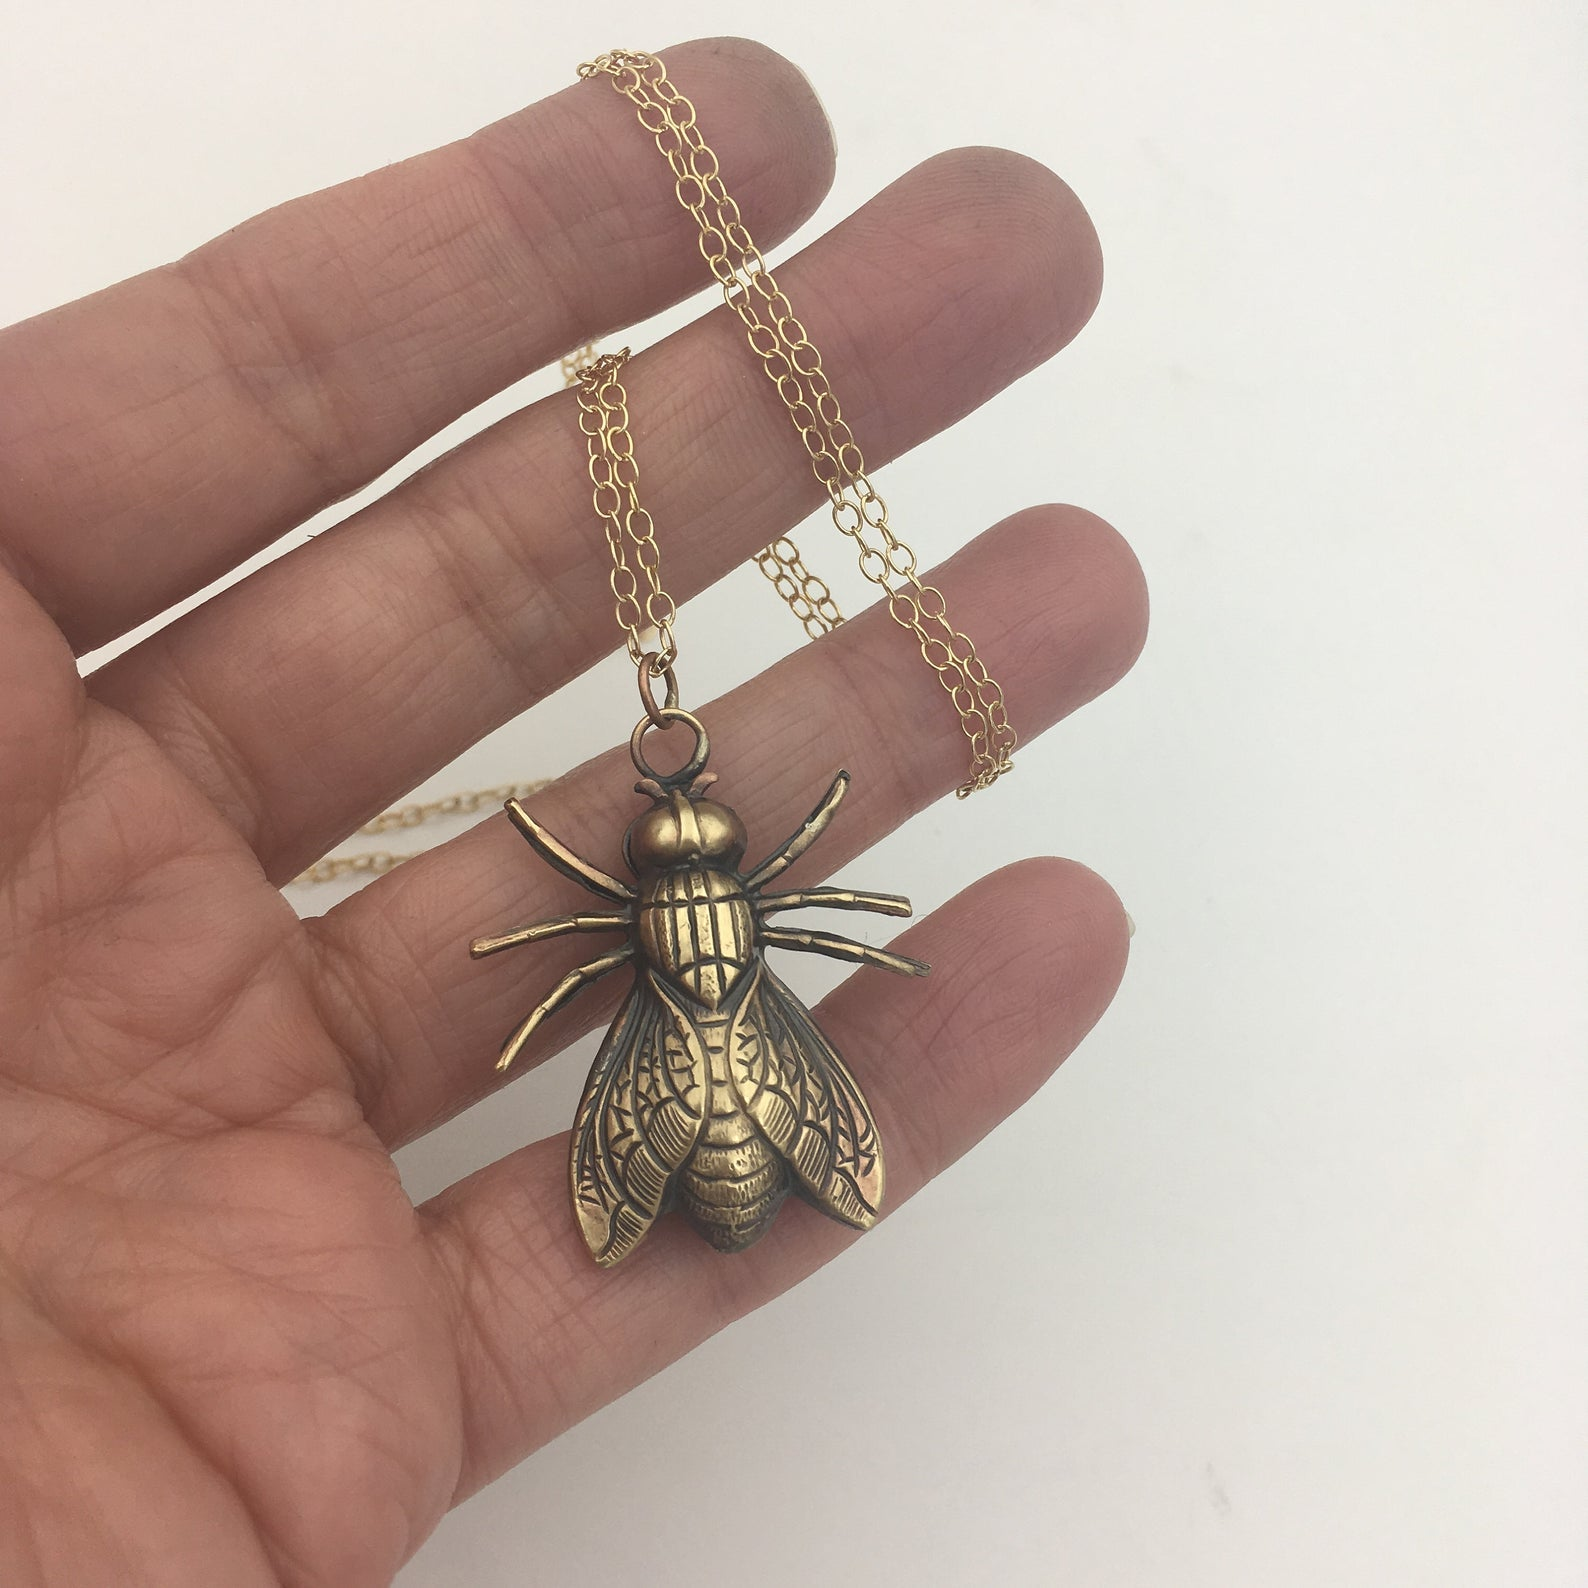 Gold Filled Necklace with Brass Fly Insect Pendant -- You Choose the Length!